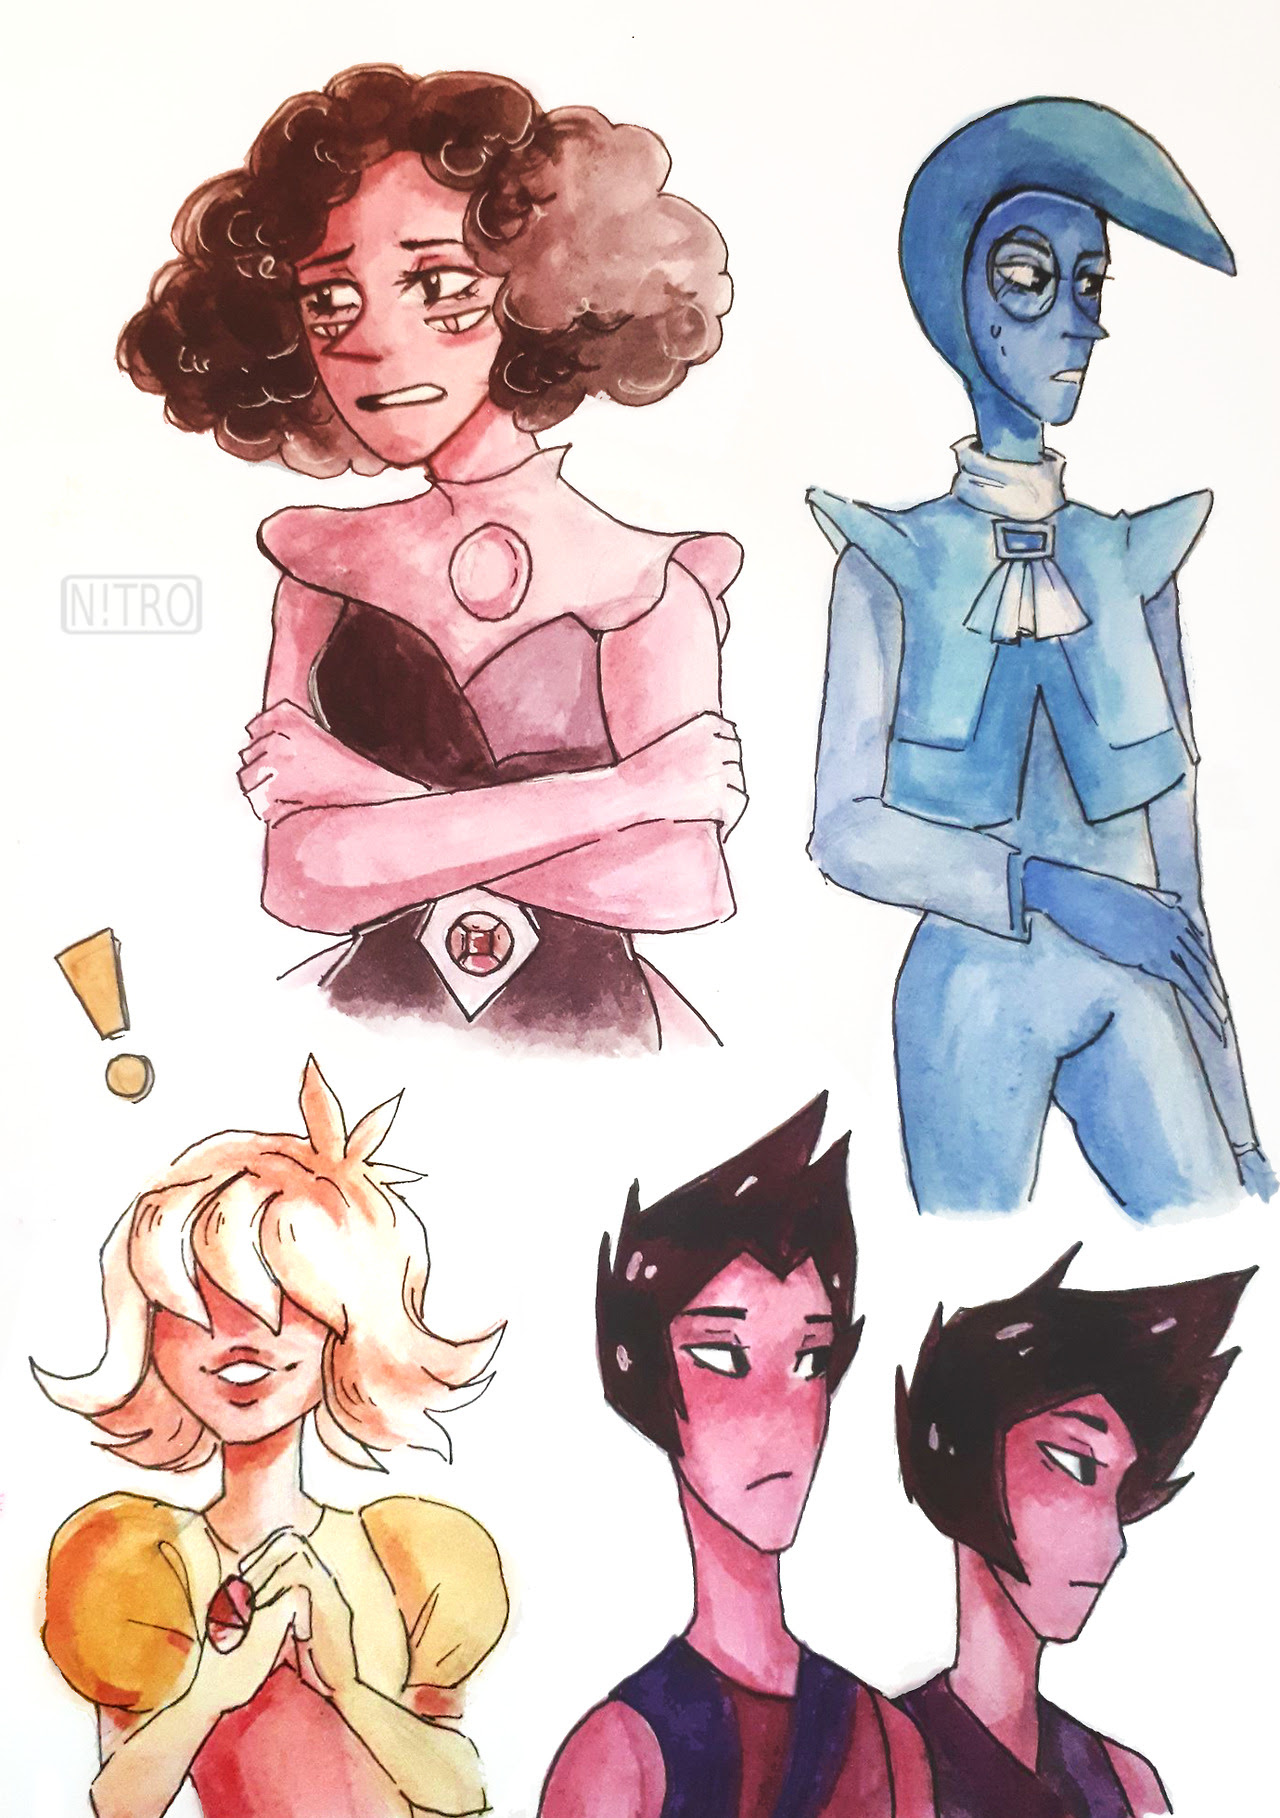 I love them all so much!!! They're adorable and Zircon is now one of my favourite characters in SU ever, I HOPE WE'LL SEE HER AGAIN, I'LL PRAY FOR HER (actually I wanted to draw her with hair but I...